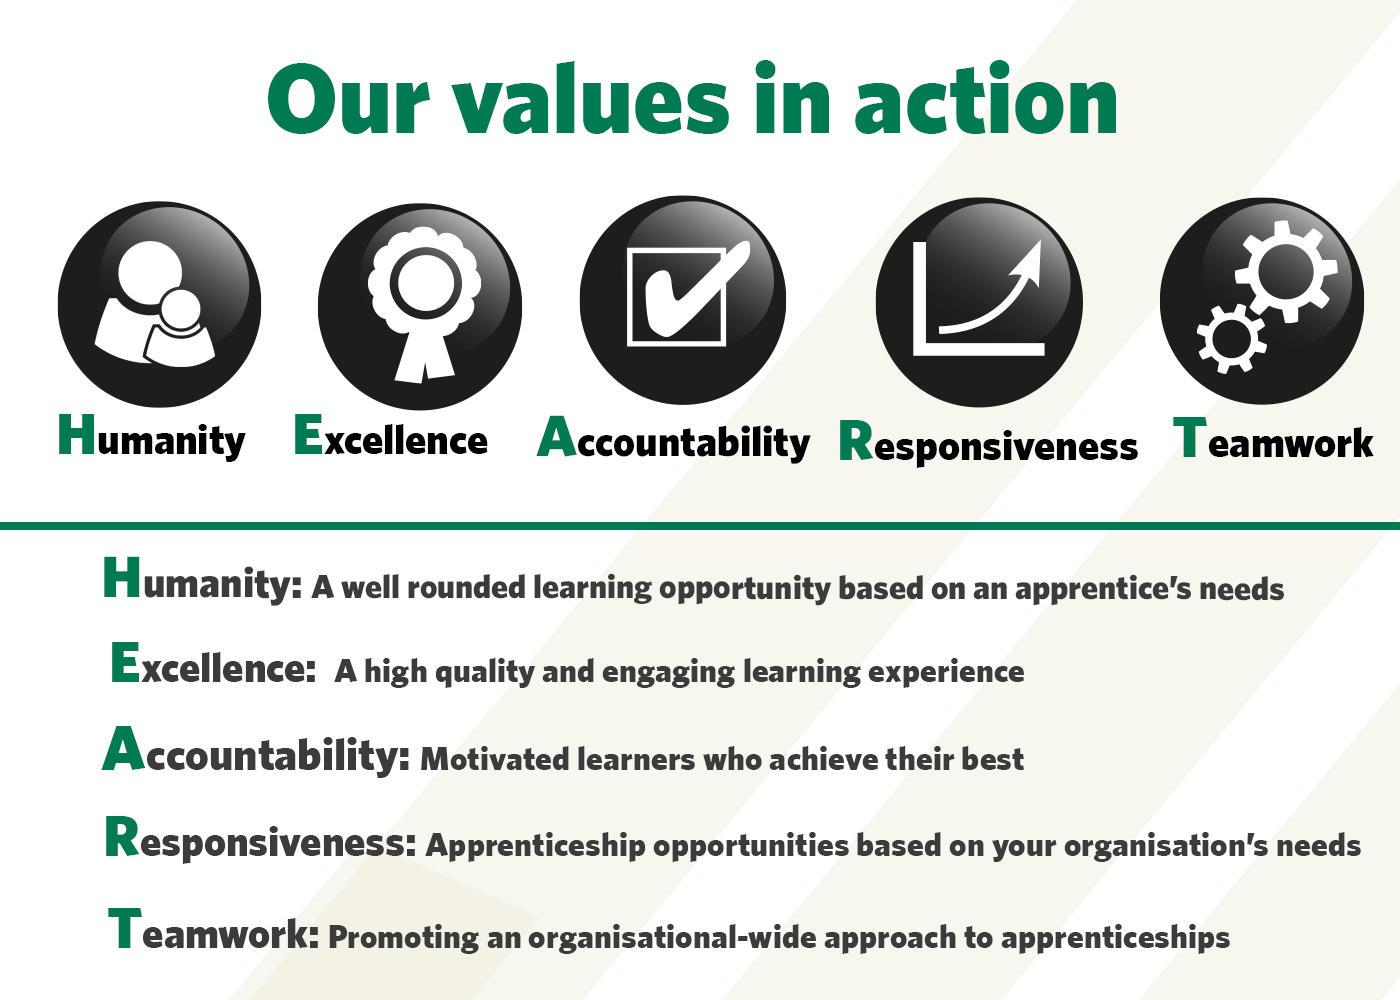 St John Ambulance's organisational values which spell HEART, humanity, excellence, accountability, responsiveness and teamwork.